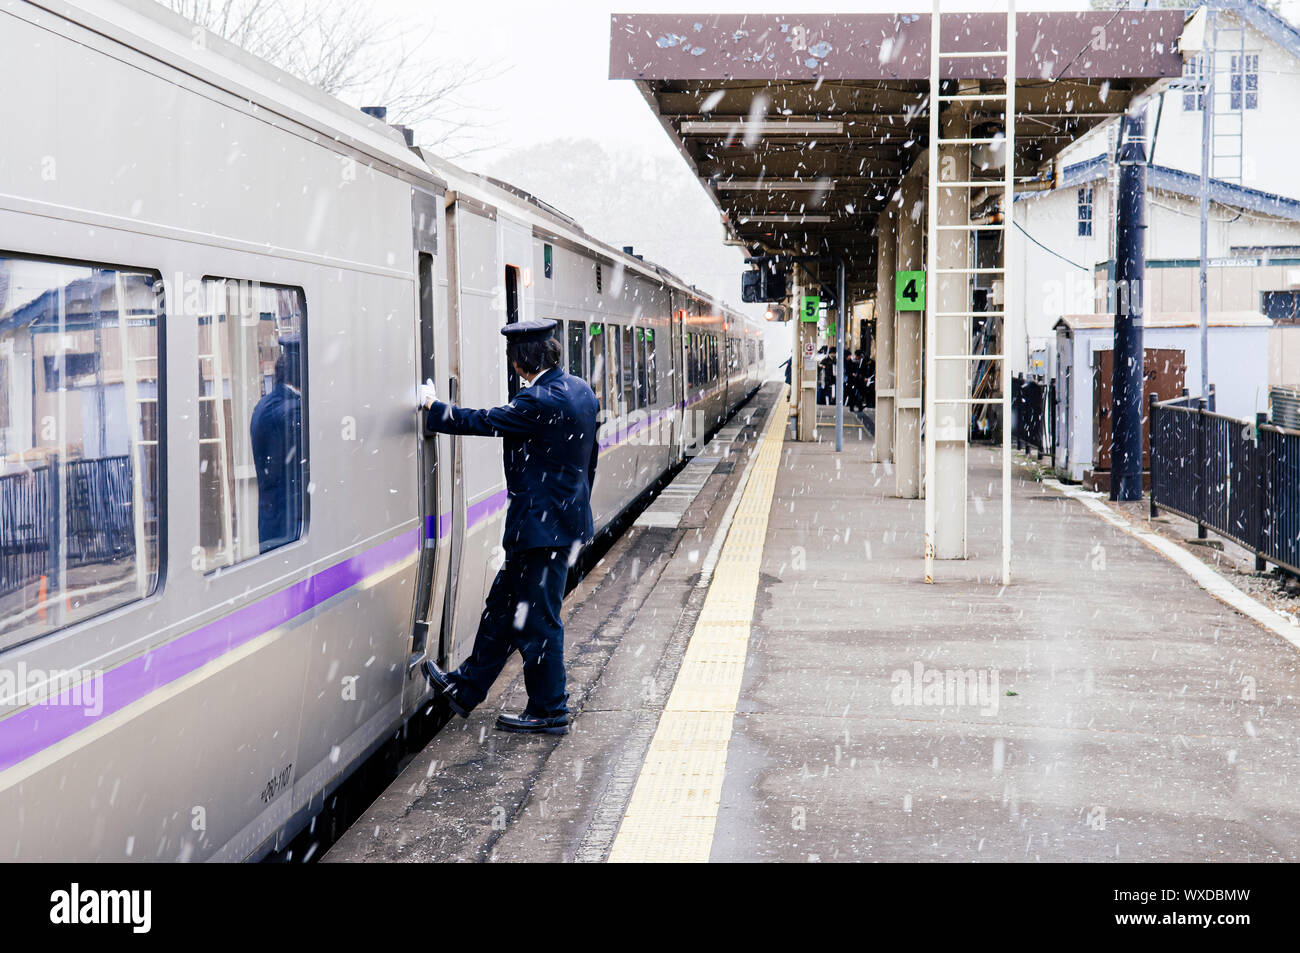 DEC 1, 2018 Hakodate, JAPAN - JR Suoer Hokuto train stop at Onuma Koen station  platform during snow fall in winter with train conductor staff stand a Stock Photo